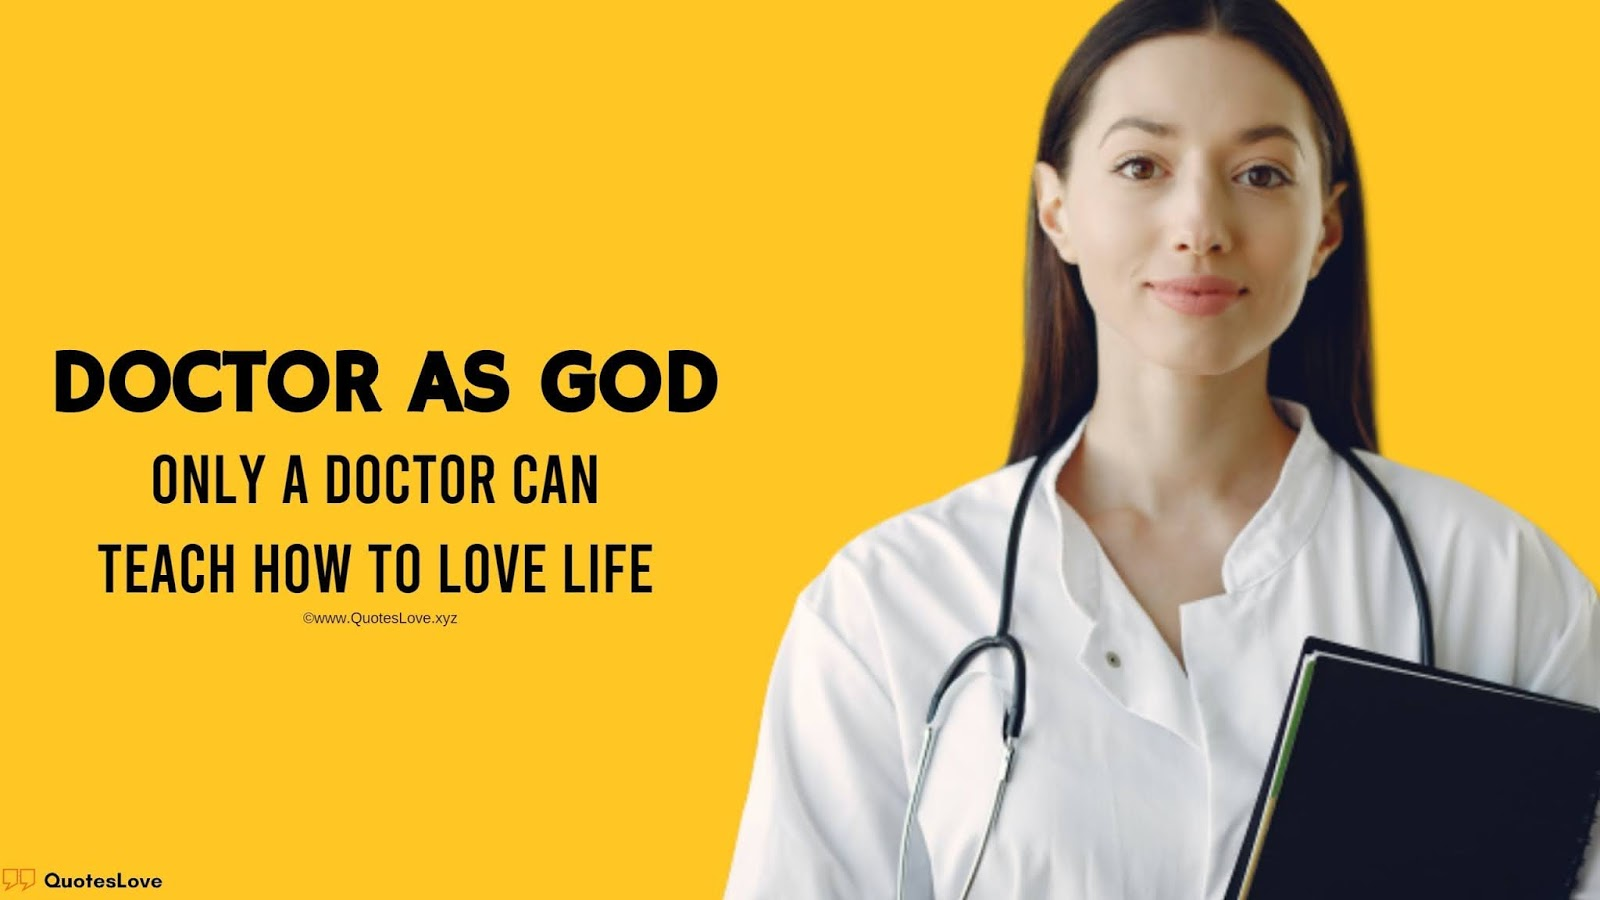 [Best] Doctor Quotes: Funny, Inspirational & Thank You